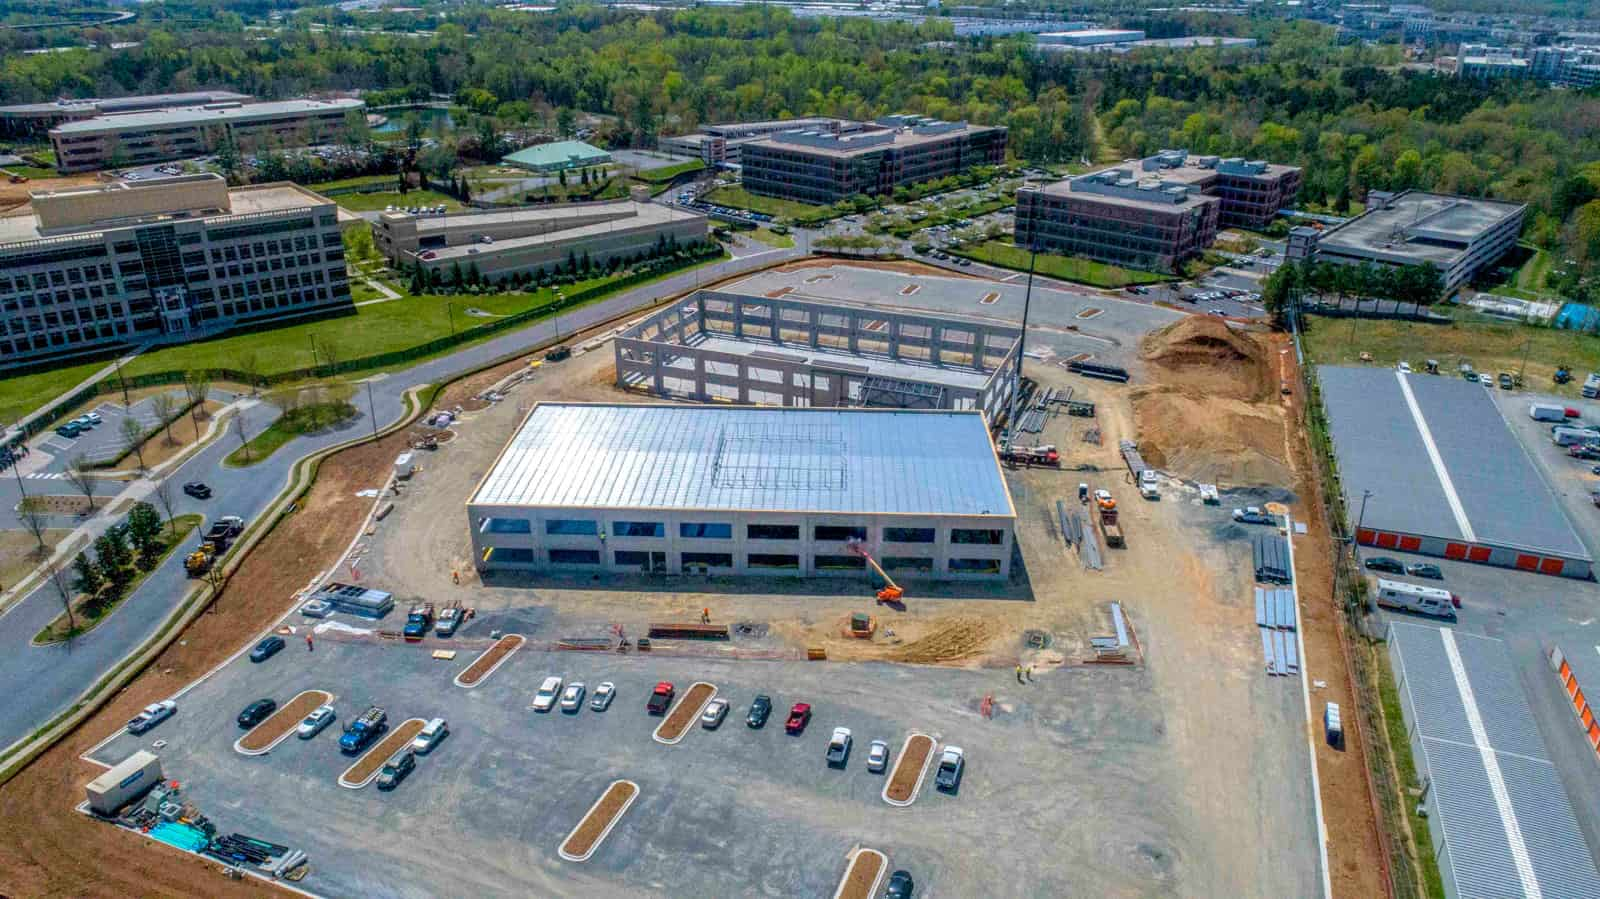 drone photo of construction site in North Carolina with completed building and frame of second buildling